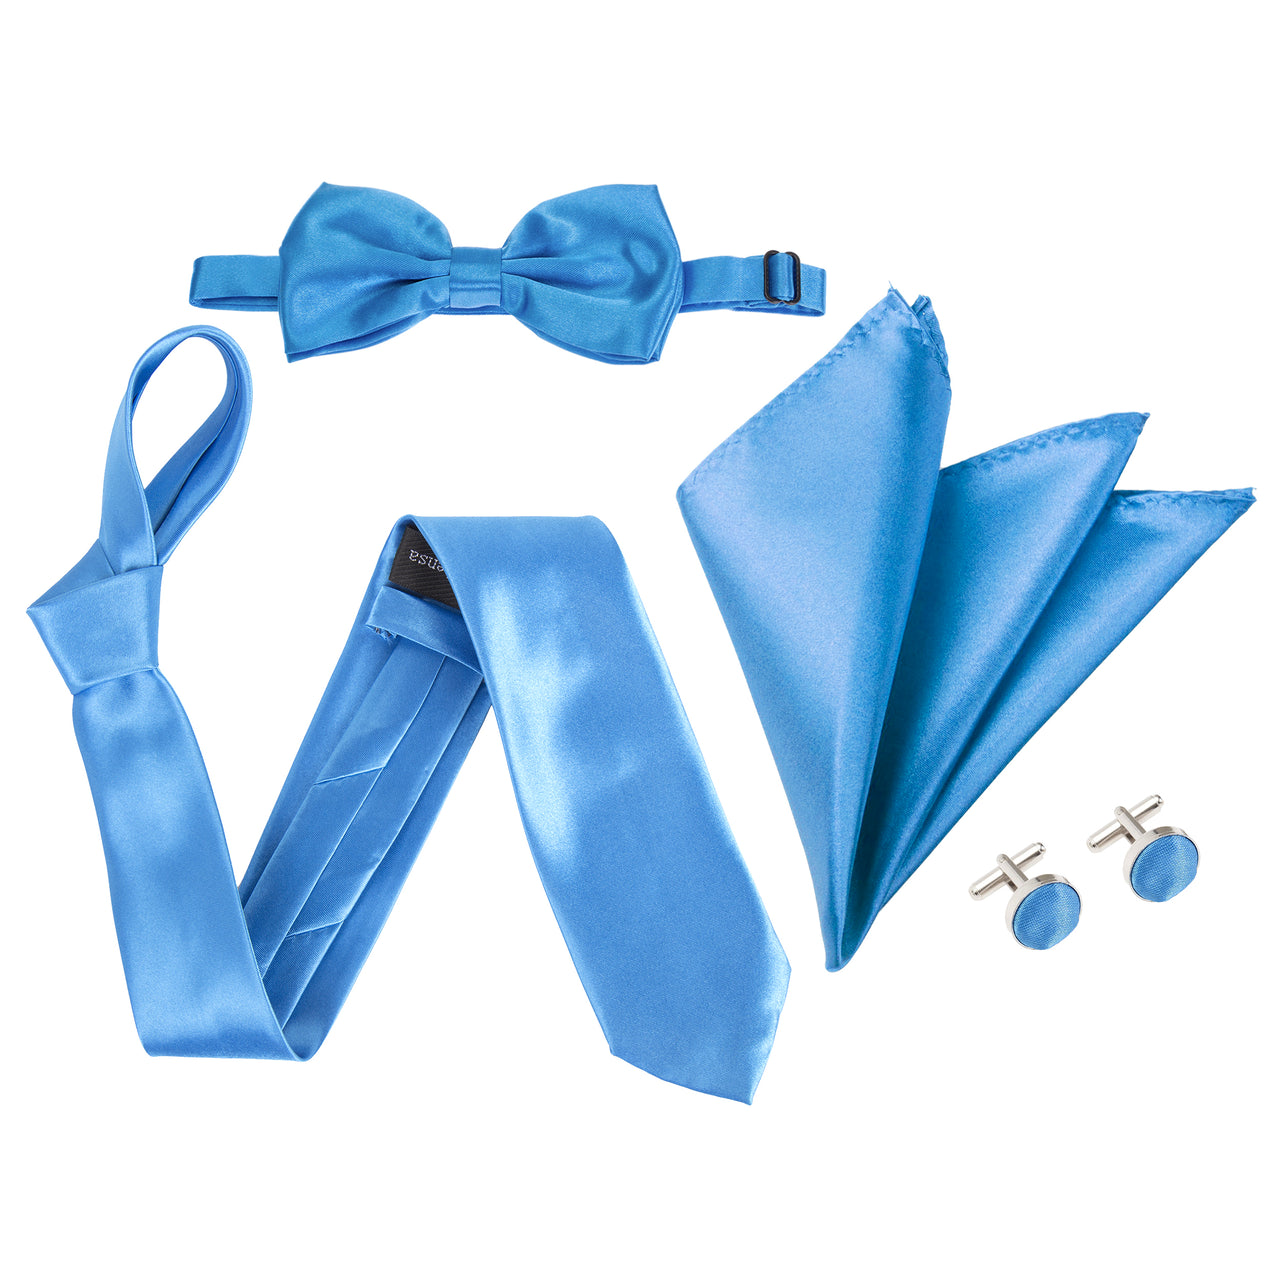 "4pc Tie Set: Wide 3"" Tie, Bow Tie, Handkerchief & Cufflinks - Aqua Blue"